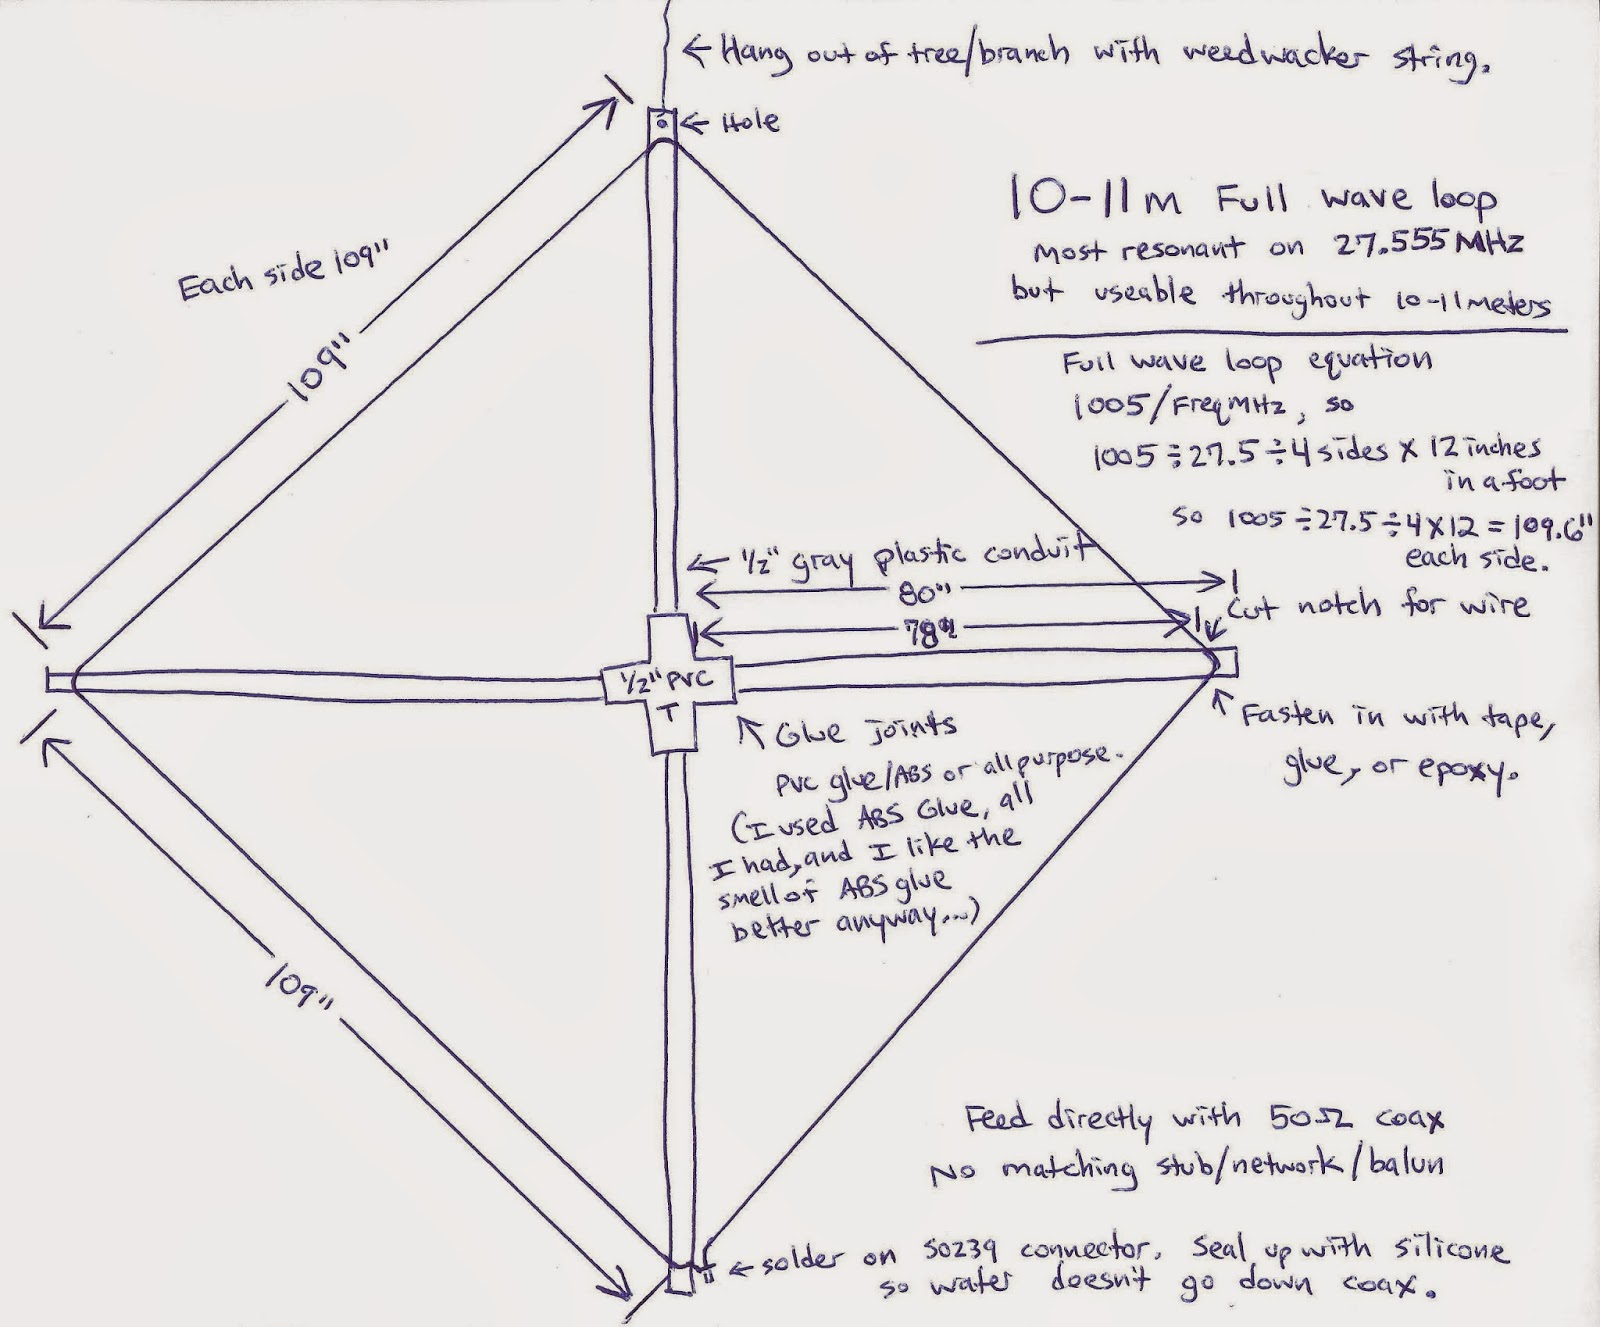 Simple Antenna Circuit Wiring Diagram For Professional Homemade Ham Radio Receiver Schematic Free Engine Booster